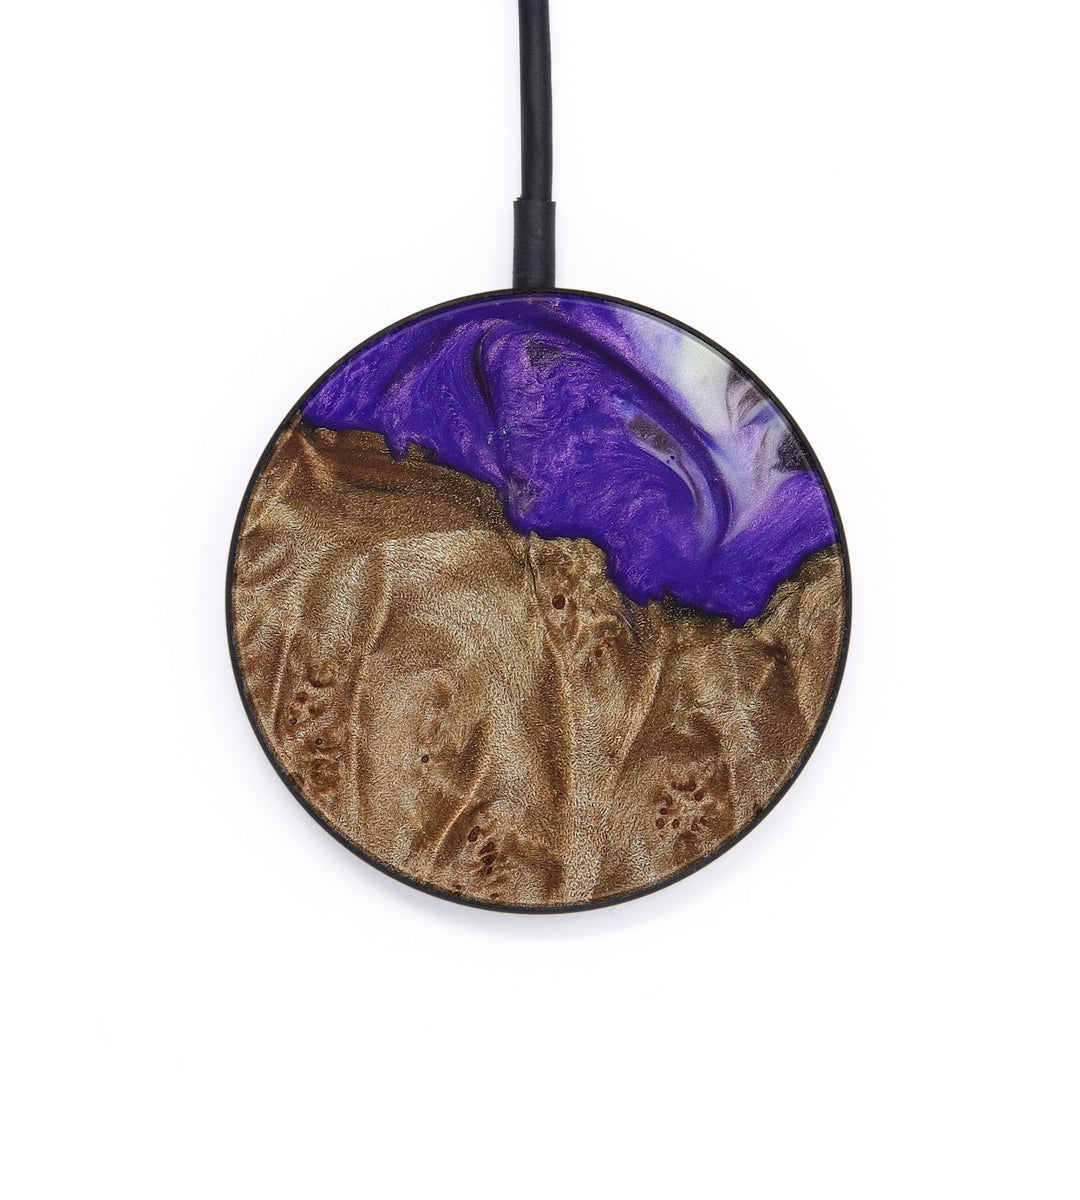 Circle Wood+Resin Wireless Charger - Vispy (Purple, 386331)